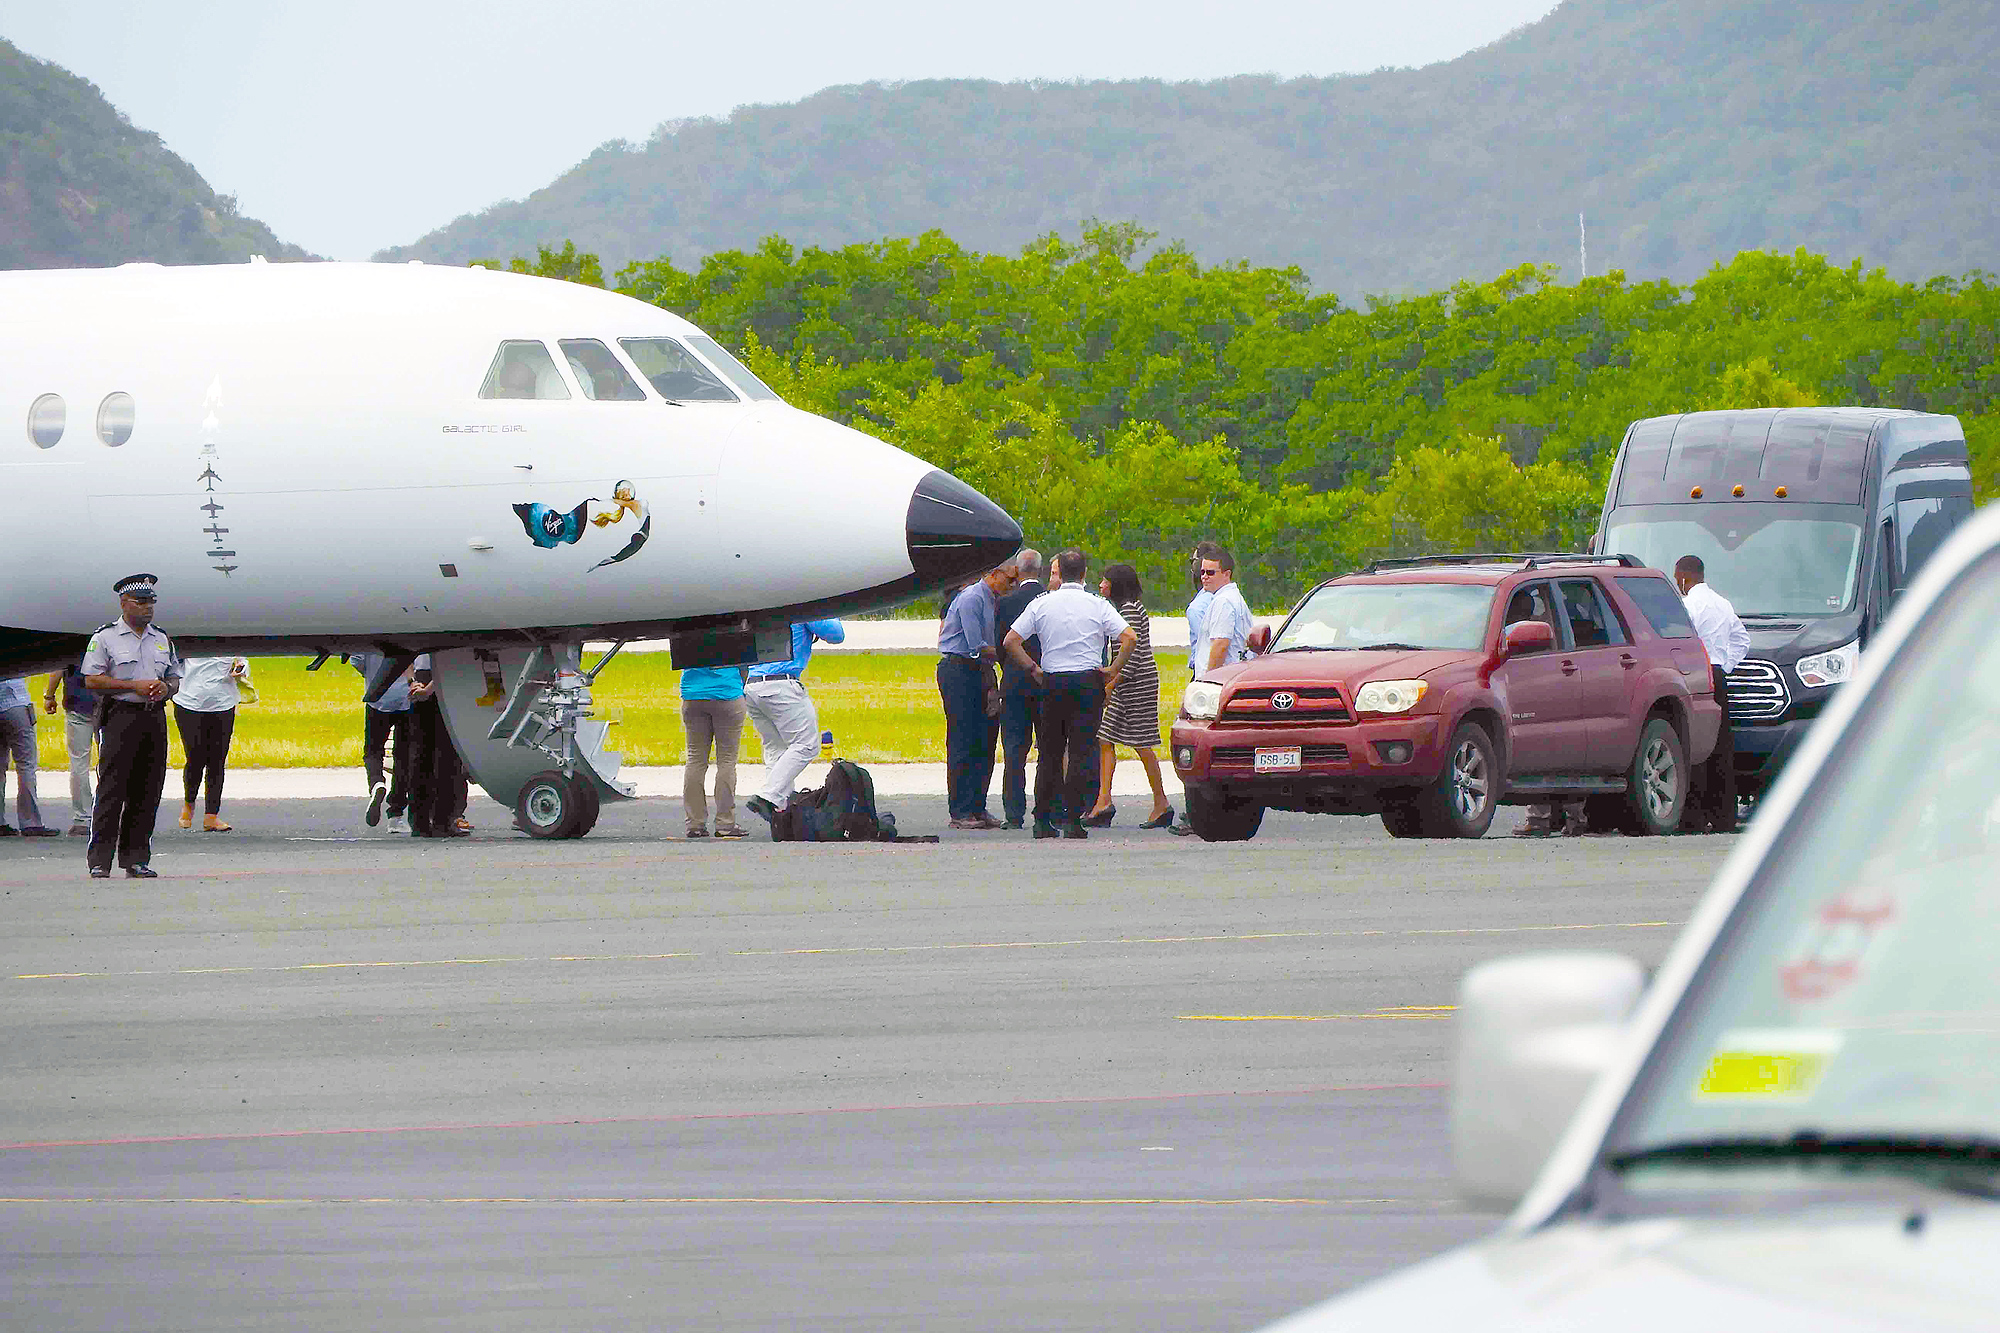 The former first couple were seen flying out of the British Virgin Islands on February 2nd after spending over a week in the Carribbean. The Obama's arrived at Tortola airport via helicopter on Thursday evening before catching a jet back to Washington DC. It is believed they had been holidaying on Richard Branson's nearby private island called Moskito. Pictured: Barack and Michelle Obama seen leaving the British Virgin Islands Ref: SPL1429988 020217 Picture by: Katie King / Splash News Splash News and Pictures Los Angeles: 310-821-2666 New York: 212-619-2666 London: 870-934-2666 photodesk@splashnews.com